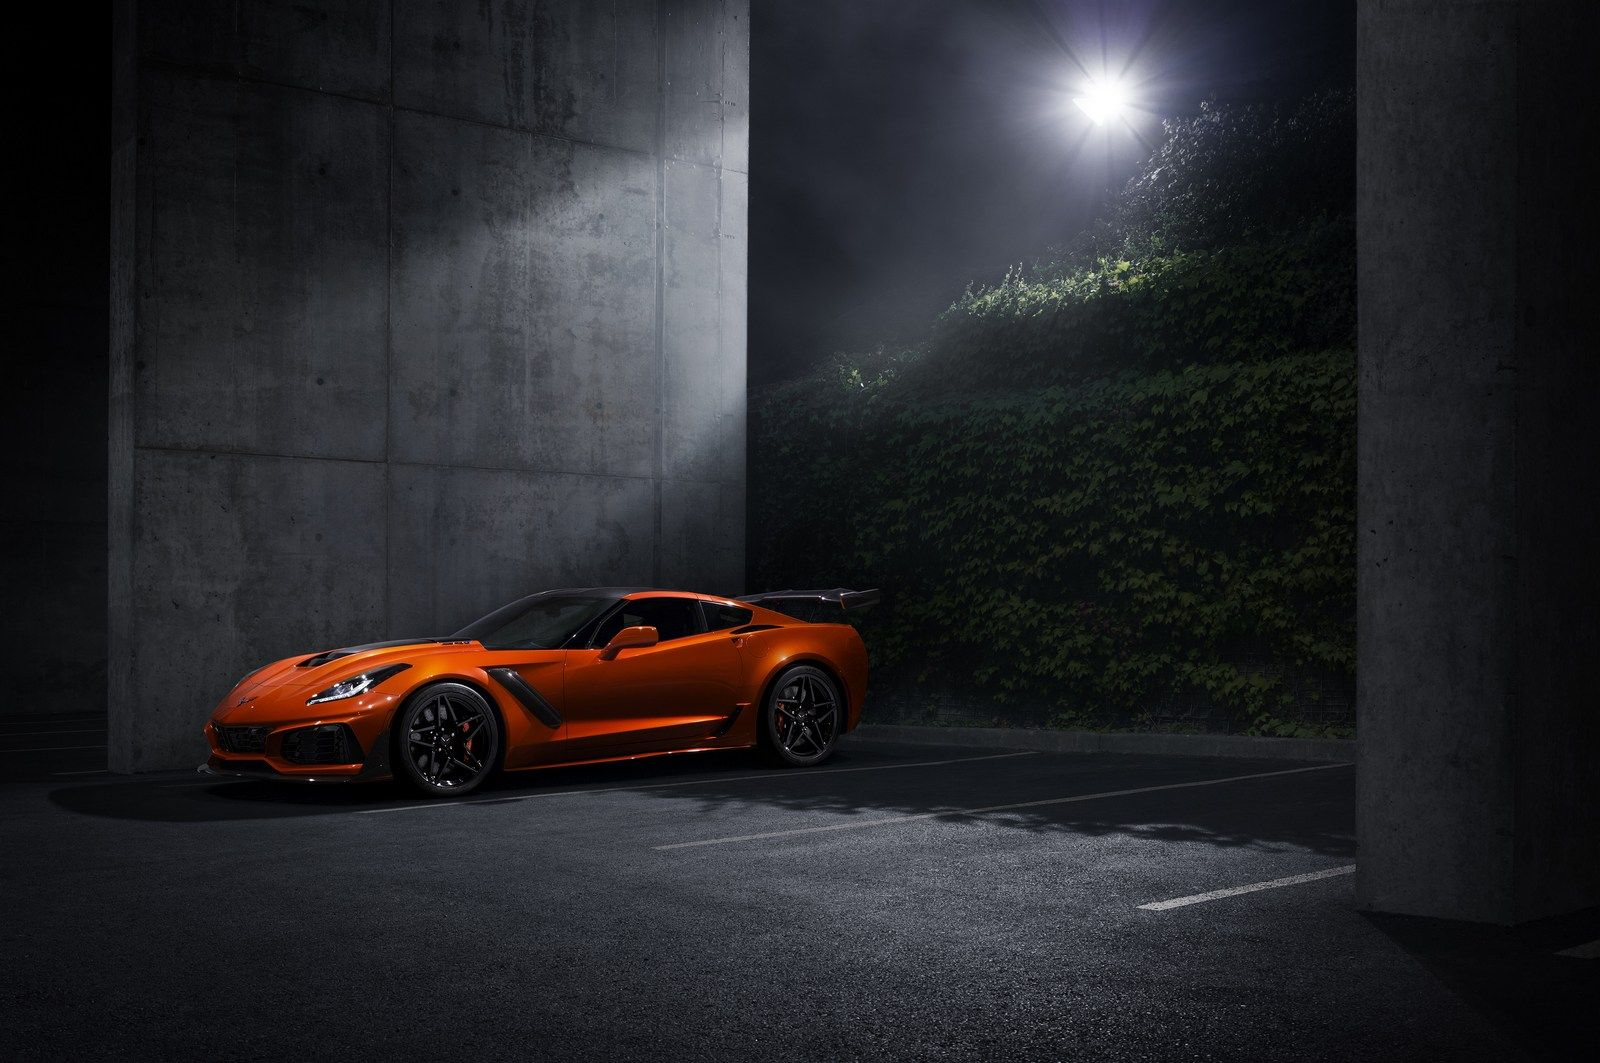 2019 Corvette ZR1 Unveiled With 755 HP, 210+ MPH Top Speed | CARS ...